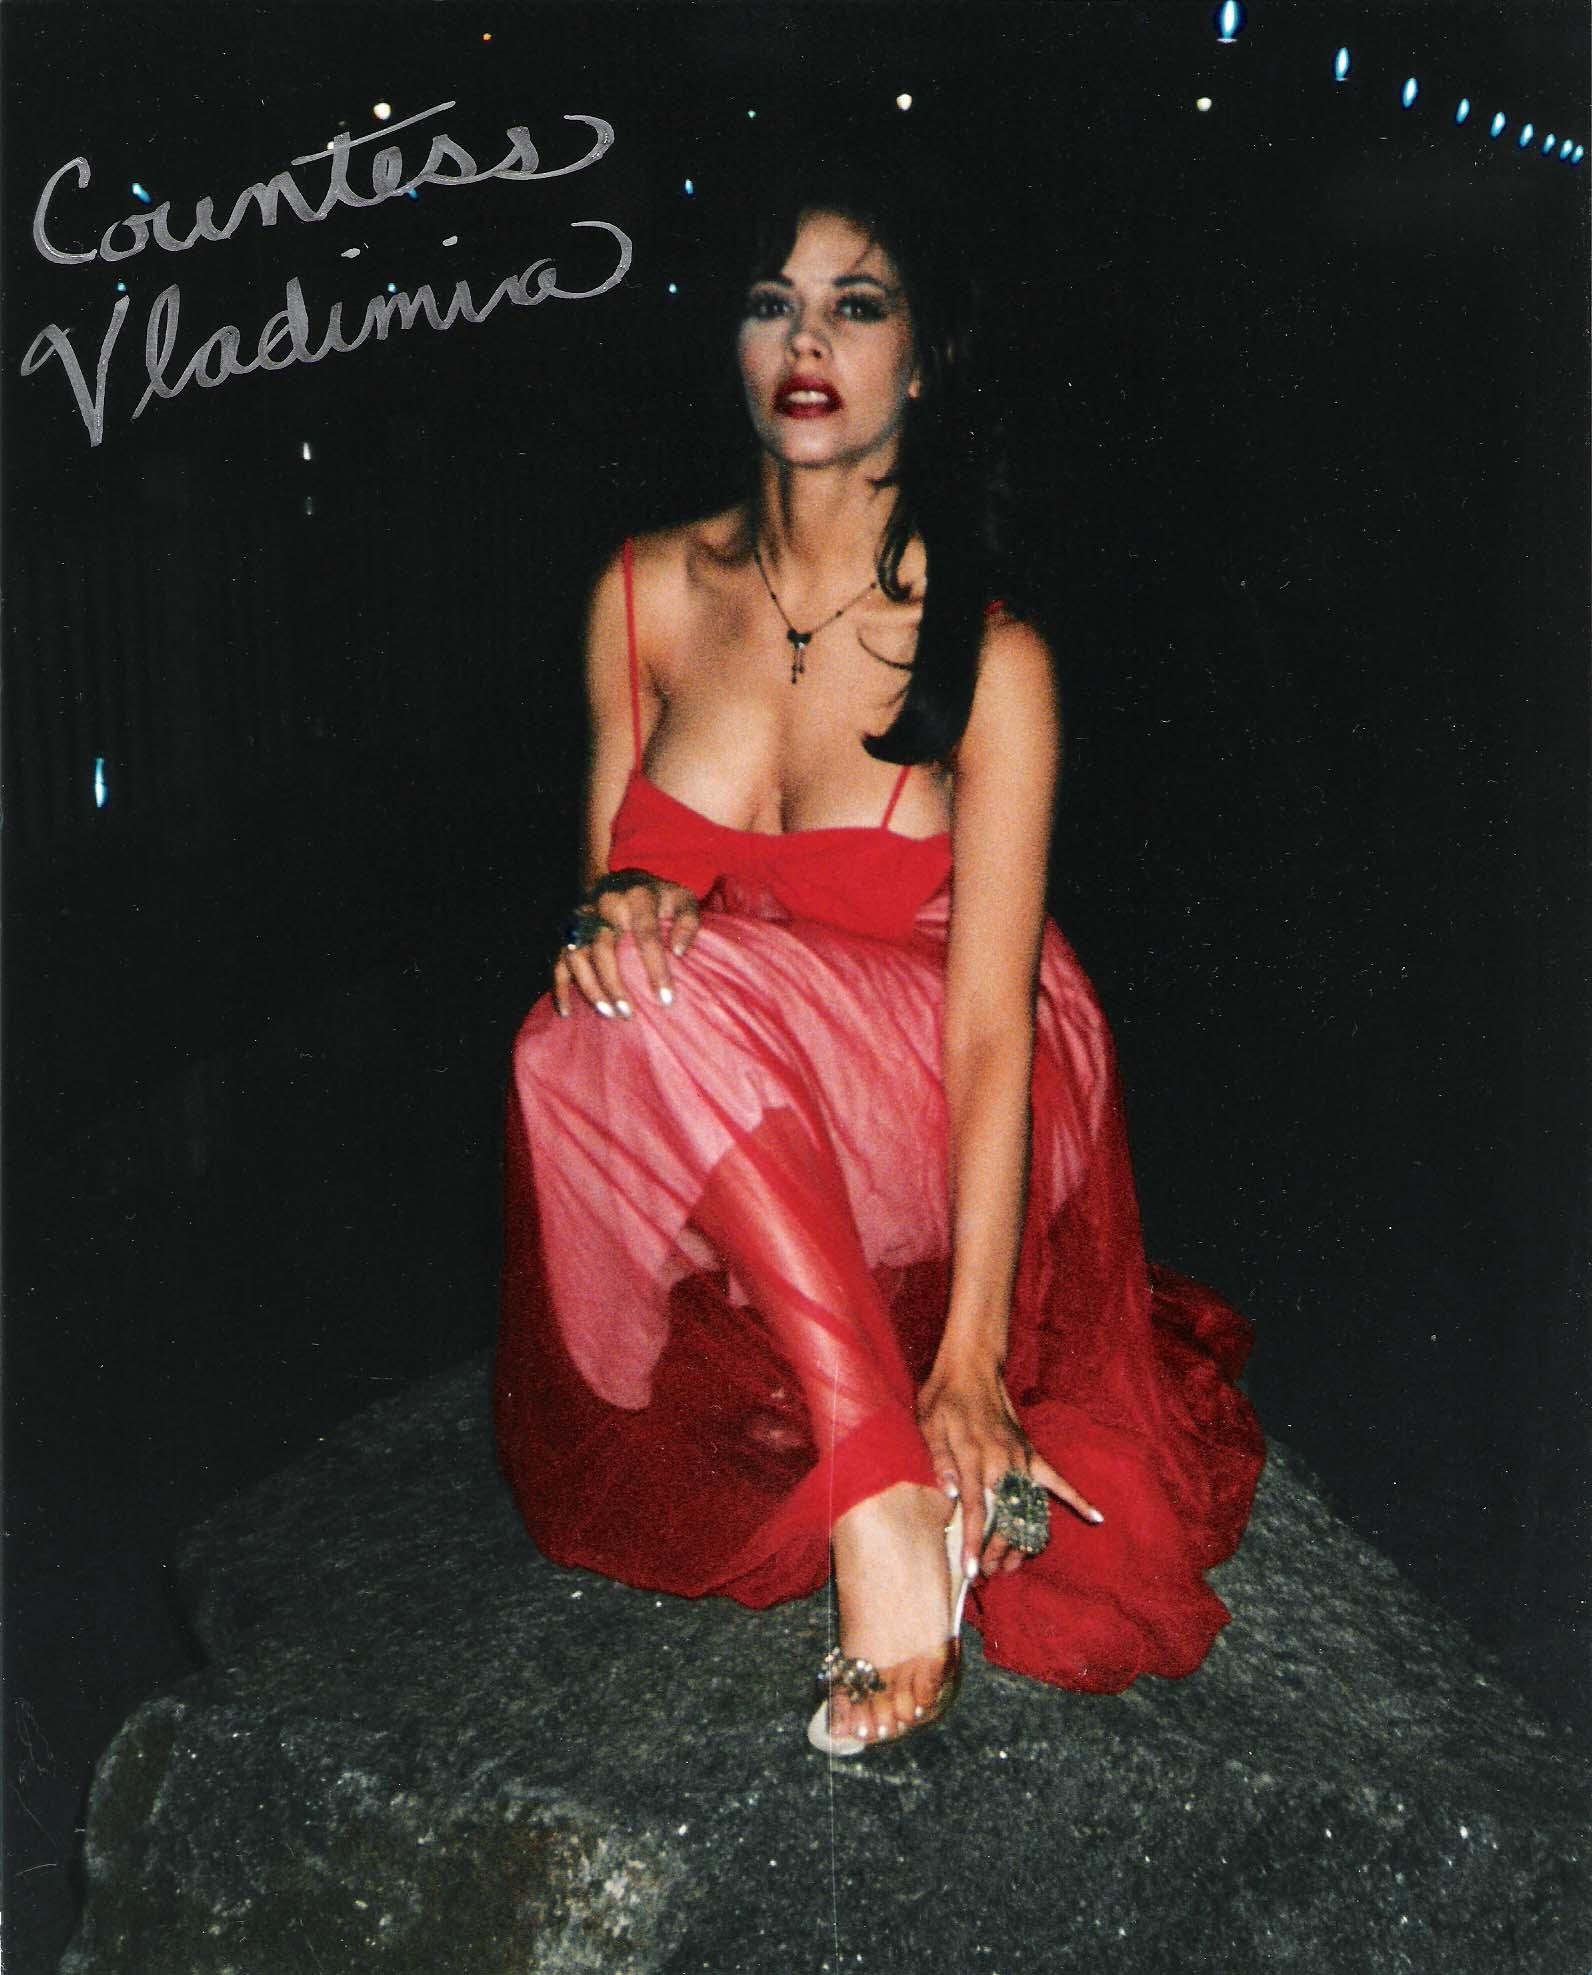 "COUNTESS VLADIMIRA ""DEMONIC DIVA"" SCREAM QUEEN ACTRESS Signed 8x10 Color Photo"